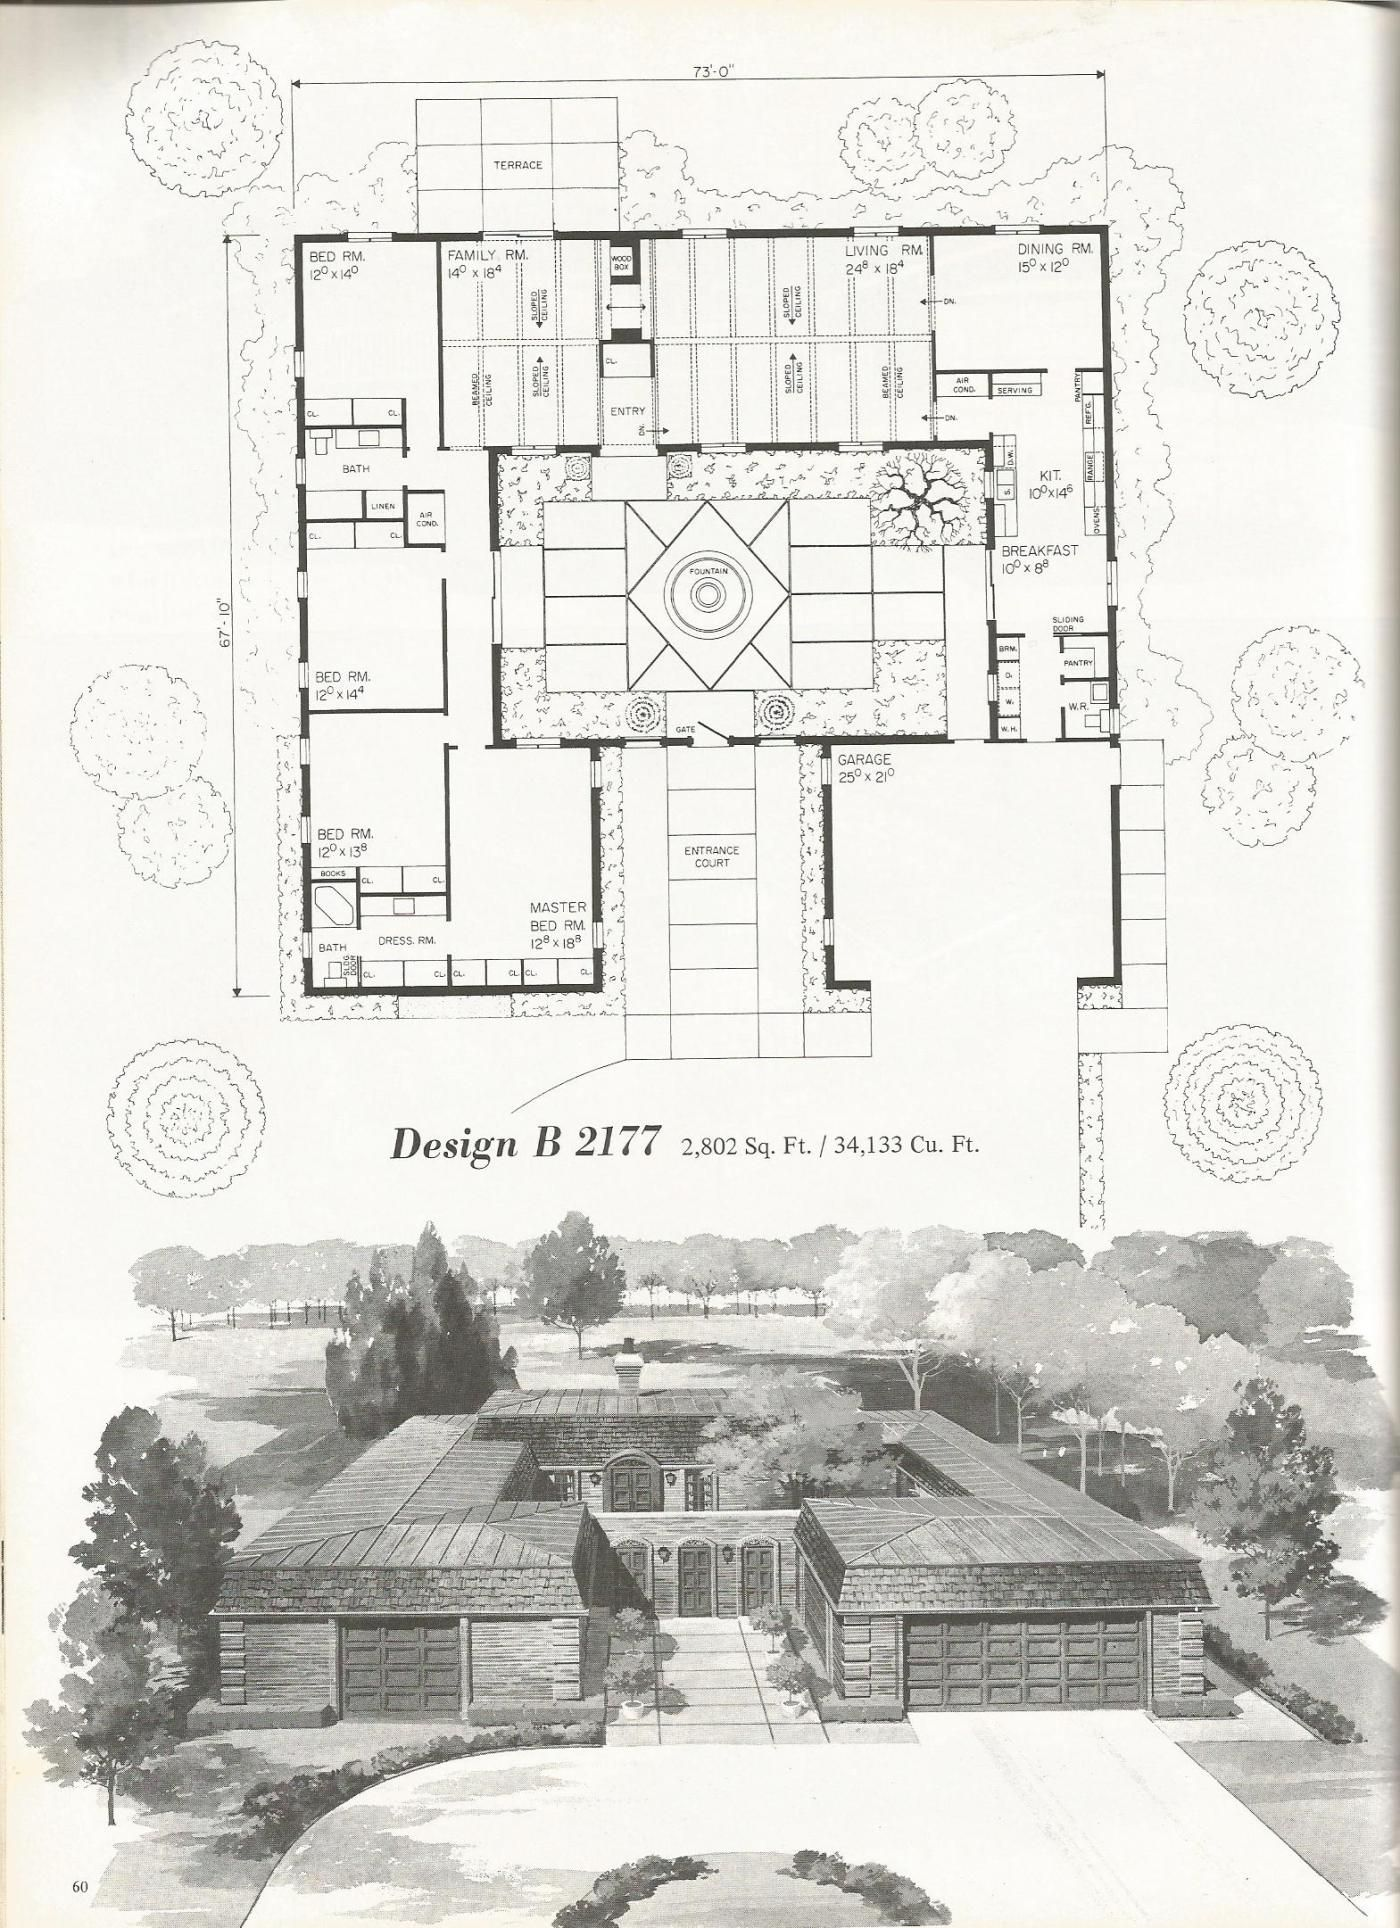 Vintage House Plans, Mid Century Homes, Luxurious Vintage Home Plans